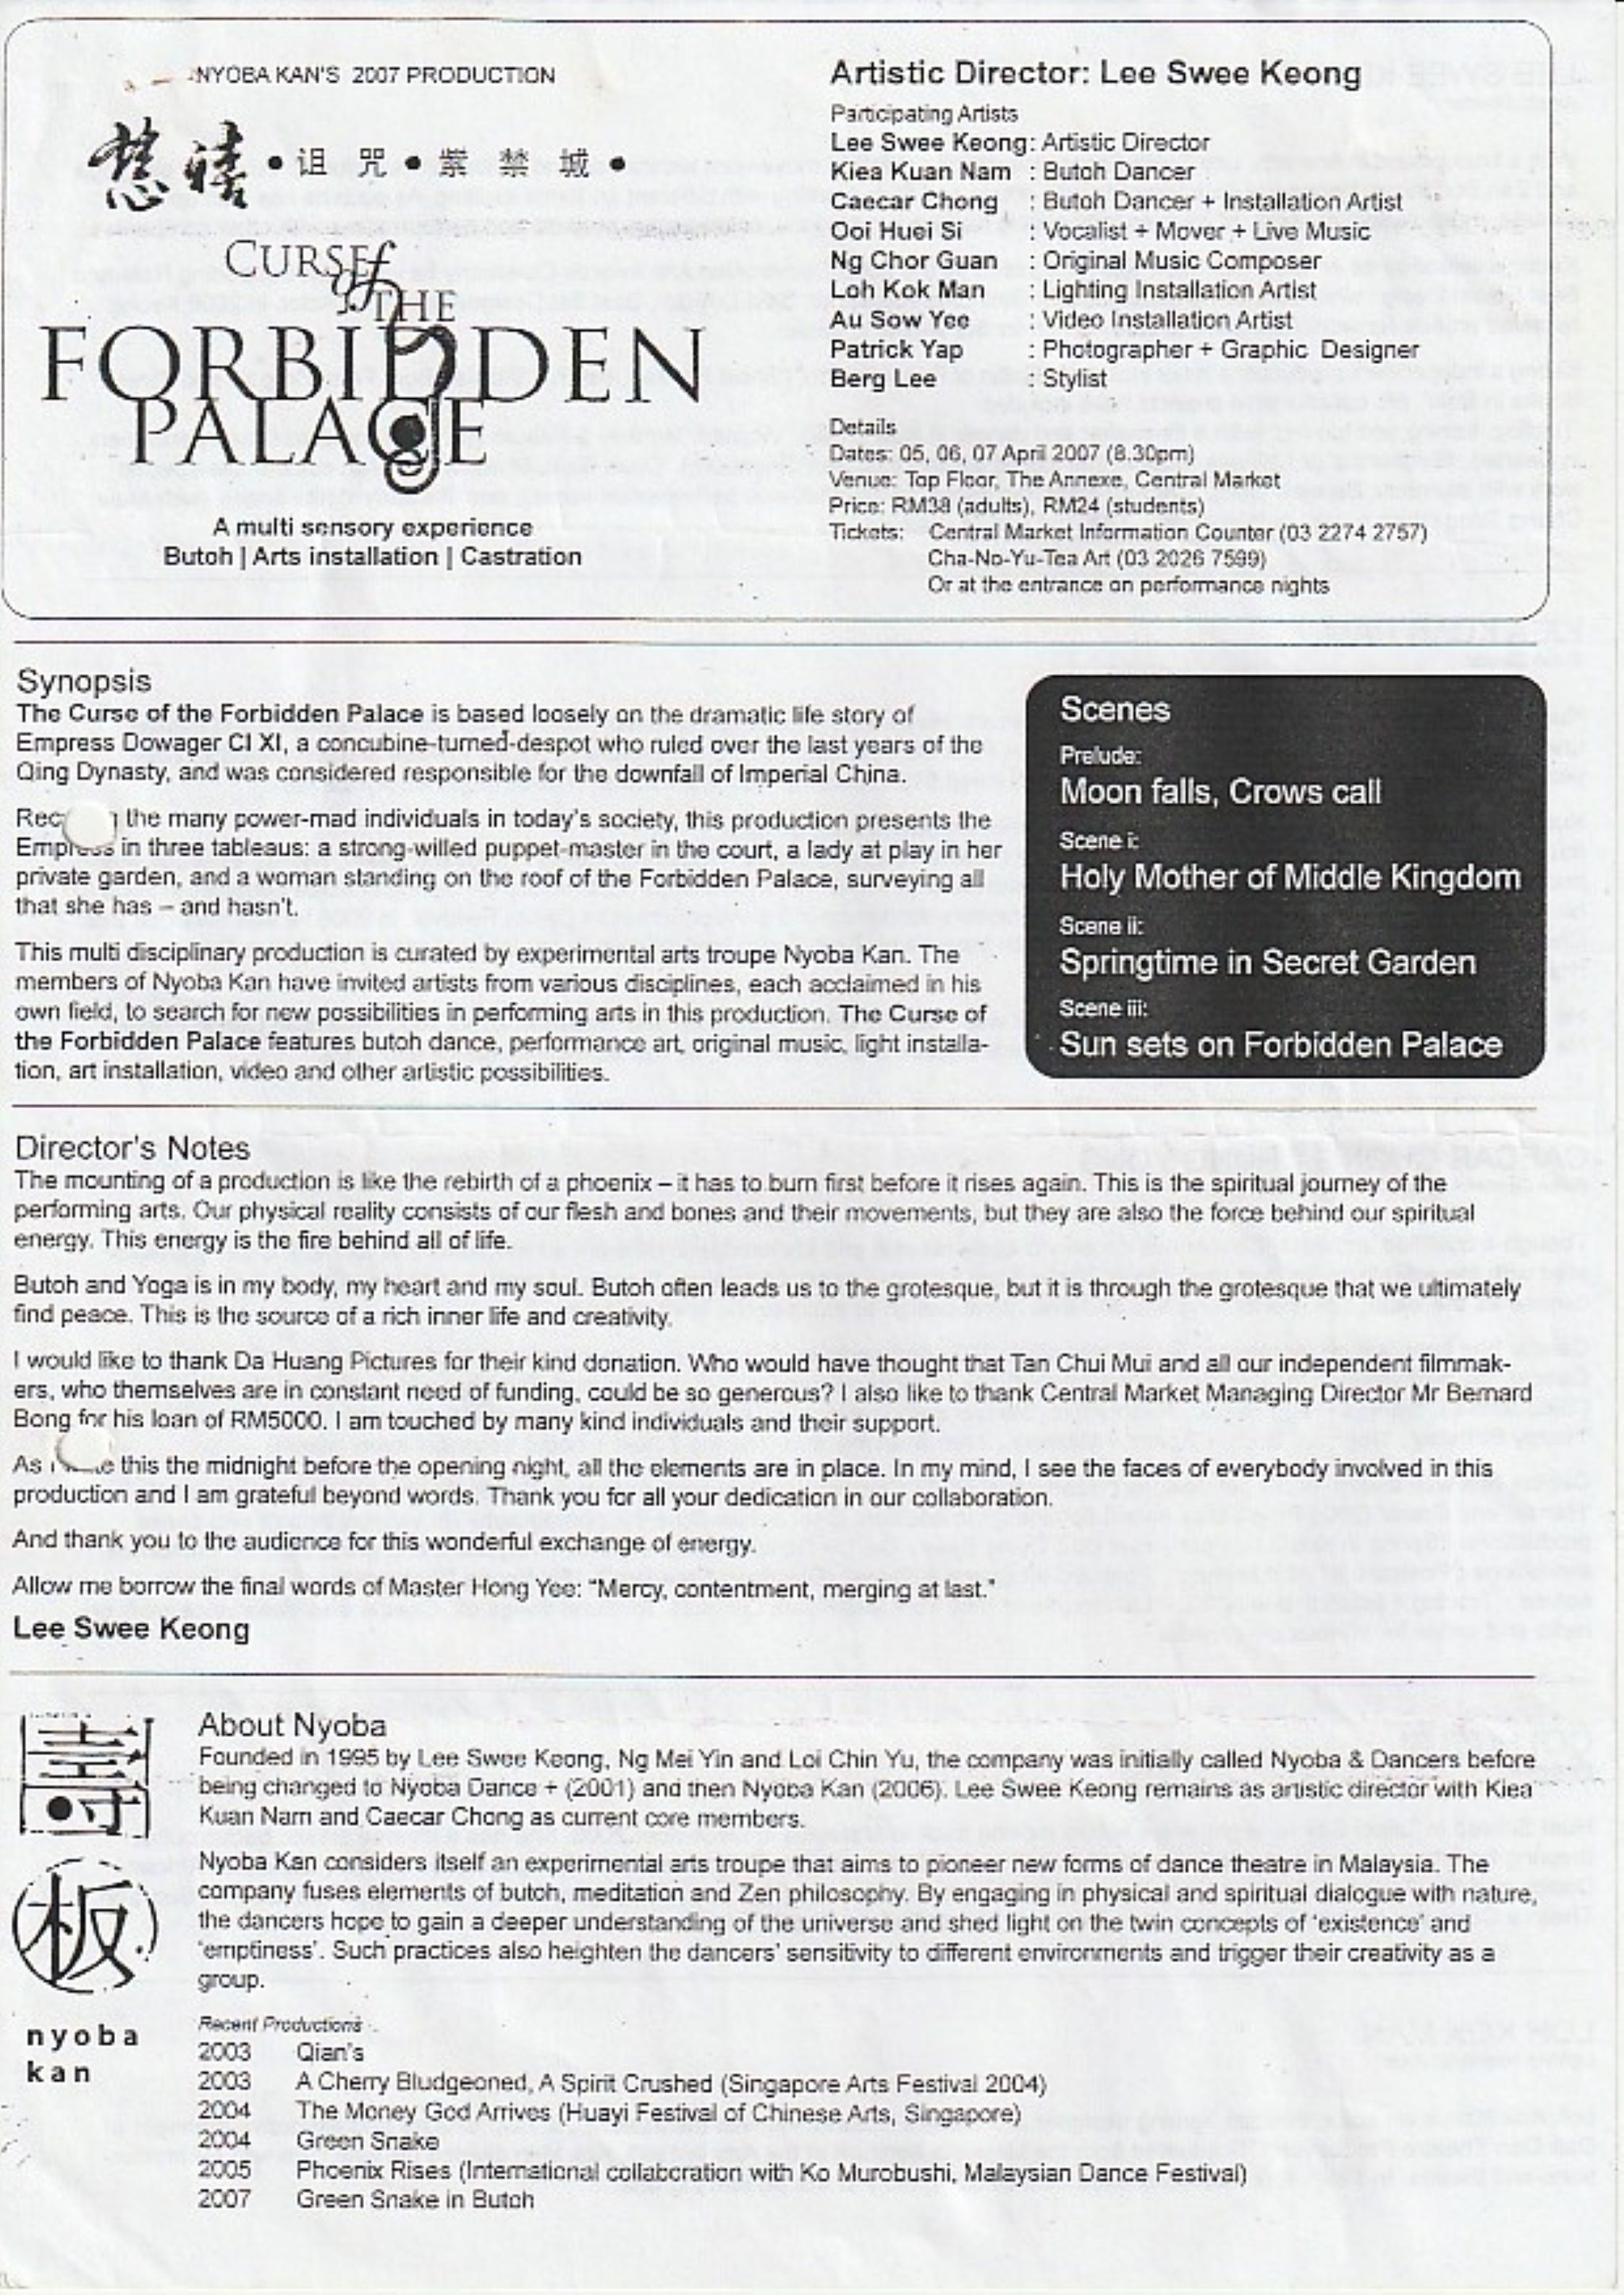 2007 Curse of the Forbidden Palace